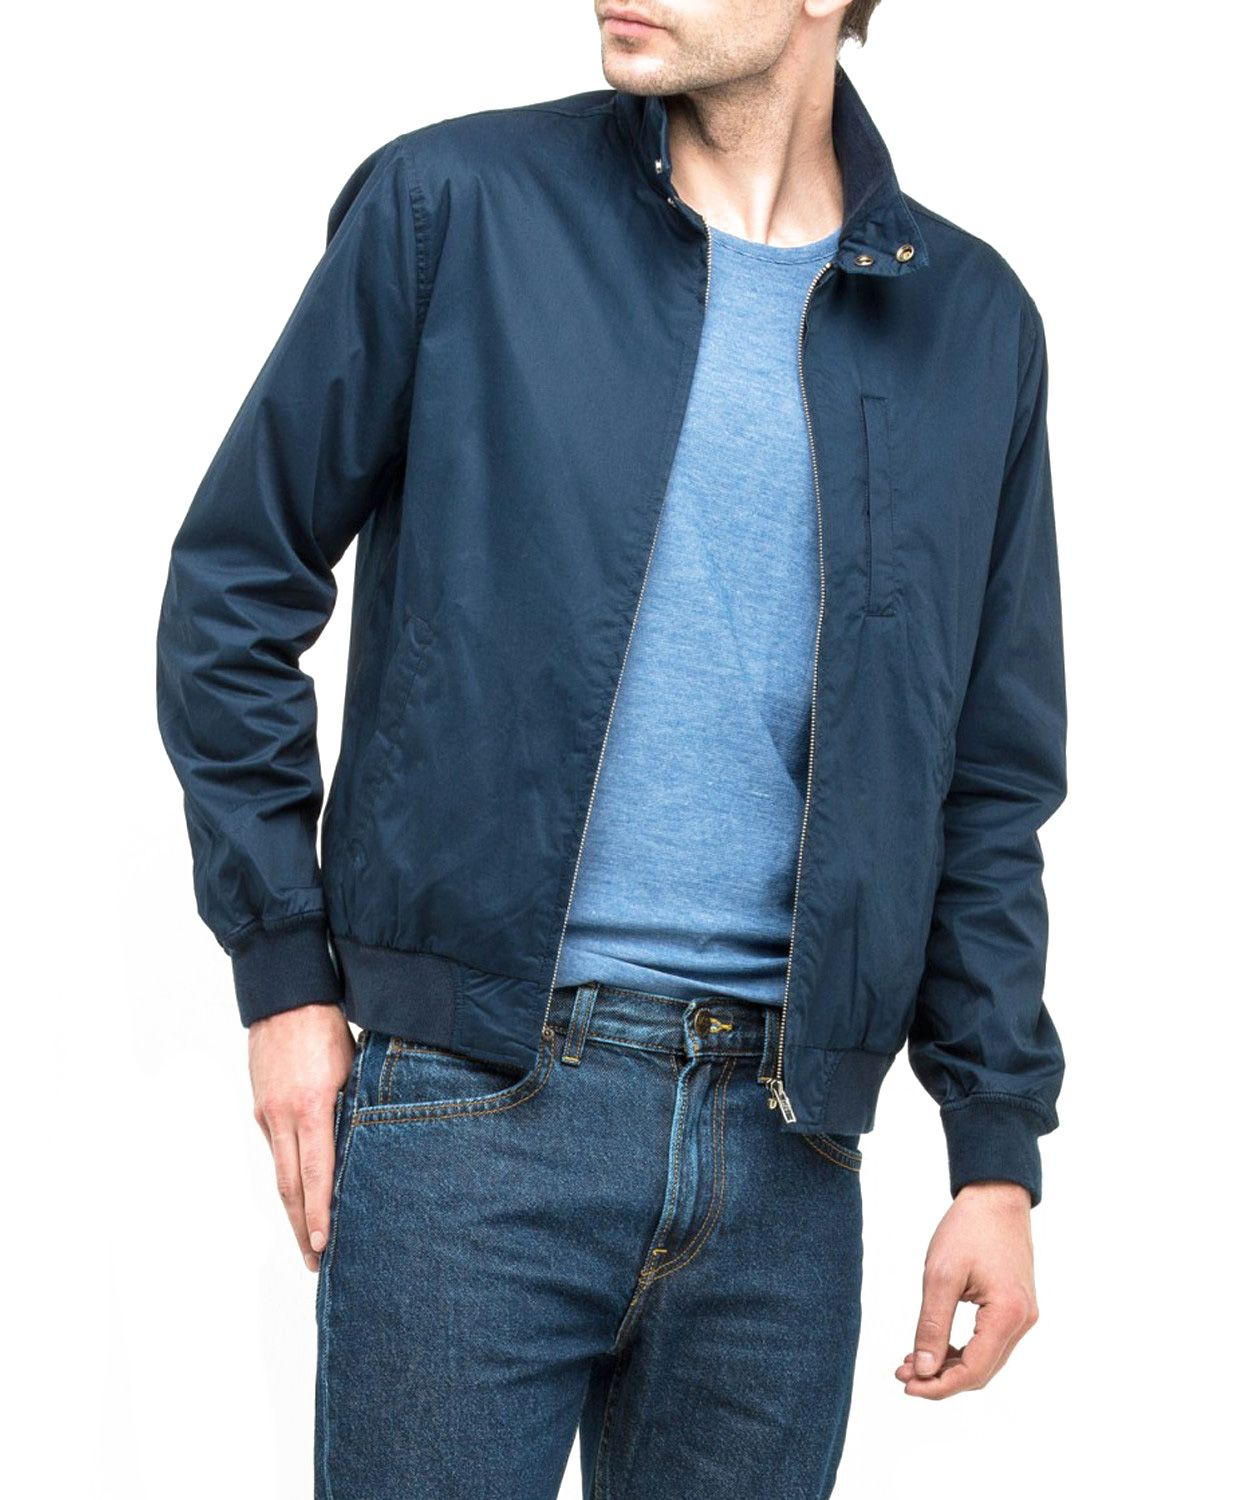 cbbd6cdad9abc Lee HARRINGTON JACKET L86ITOEE Navy Drop XL - 7355275117 - oficjalne ...